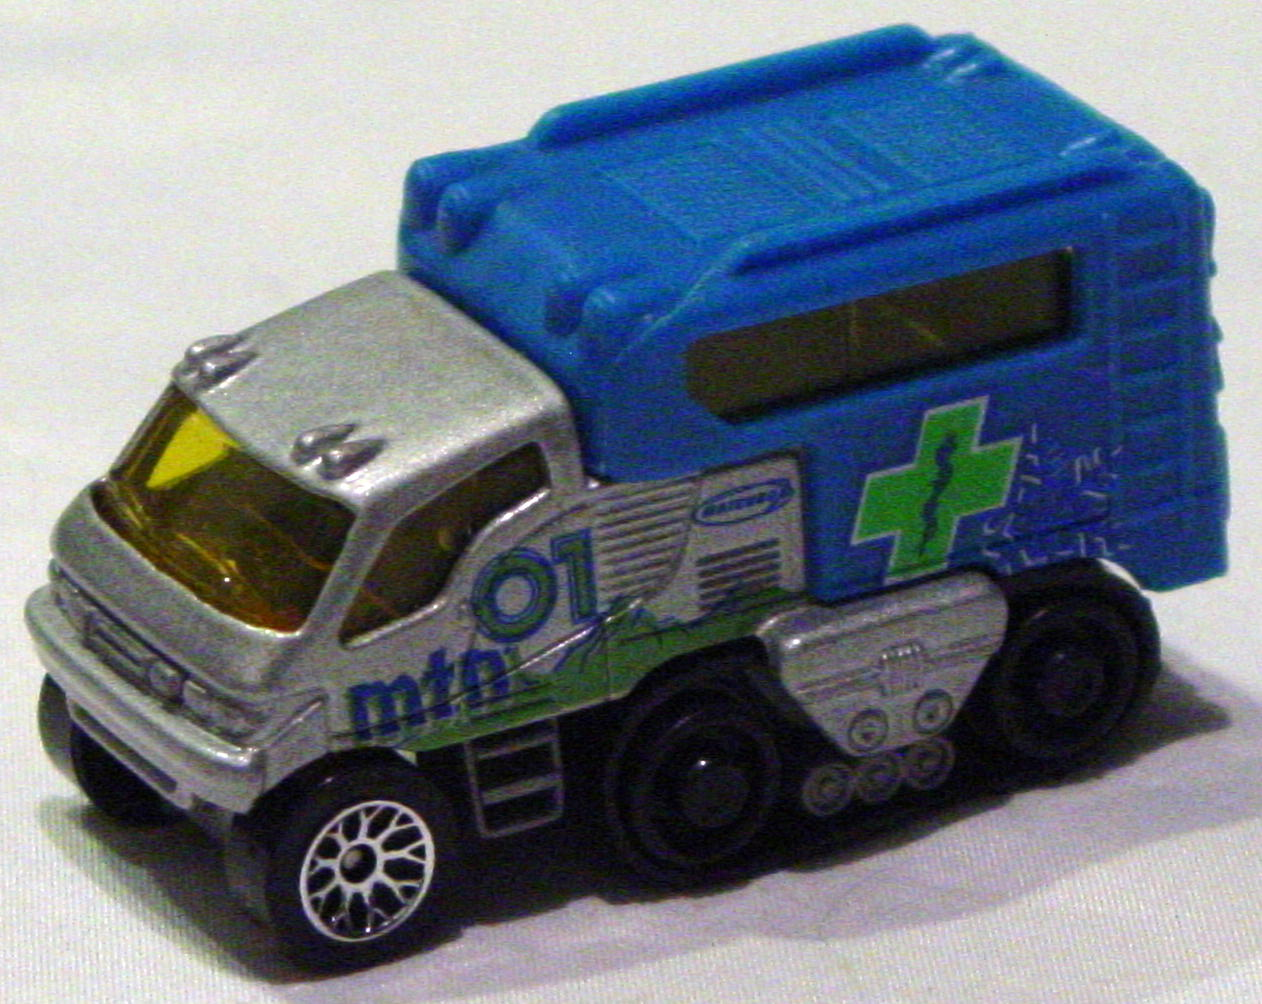 Offshore SuperFast 06 I 8 - Arctic Track Truck sil-Grey MTN 01 lace wheels made in China